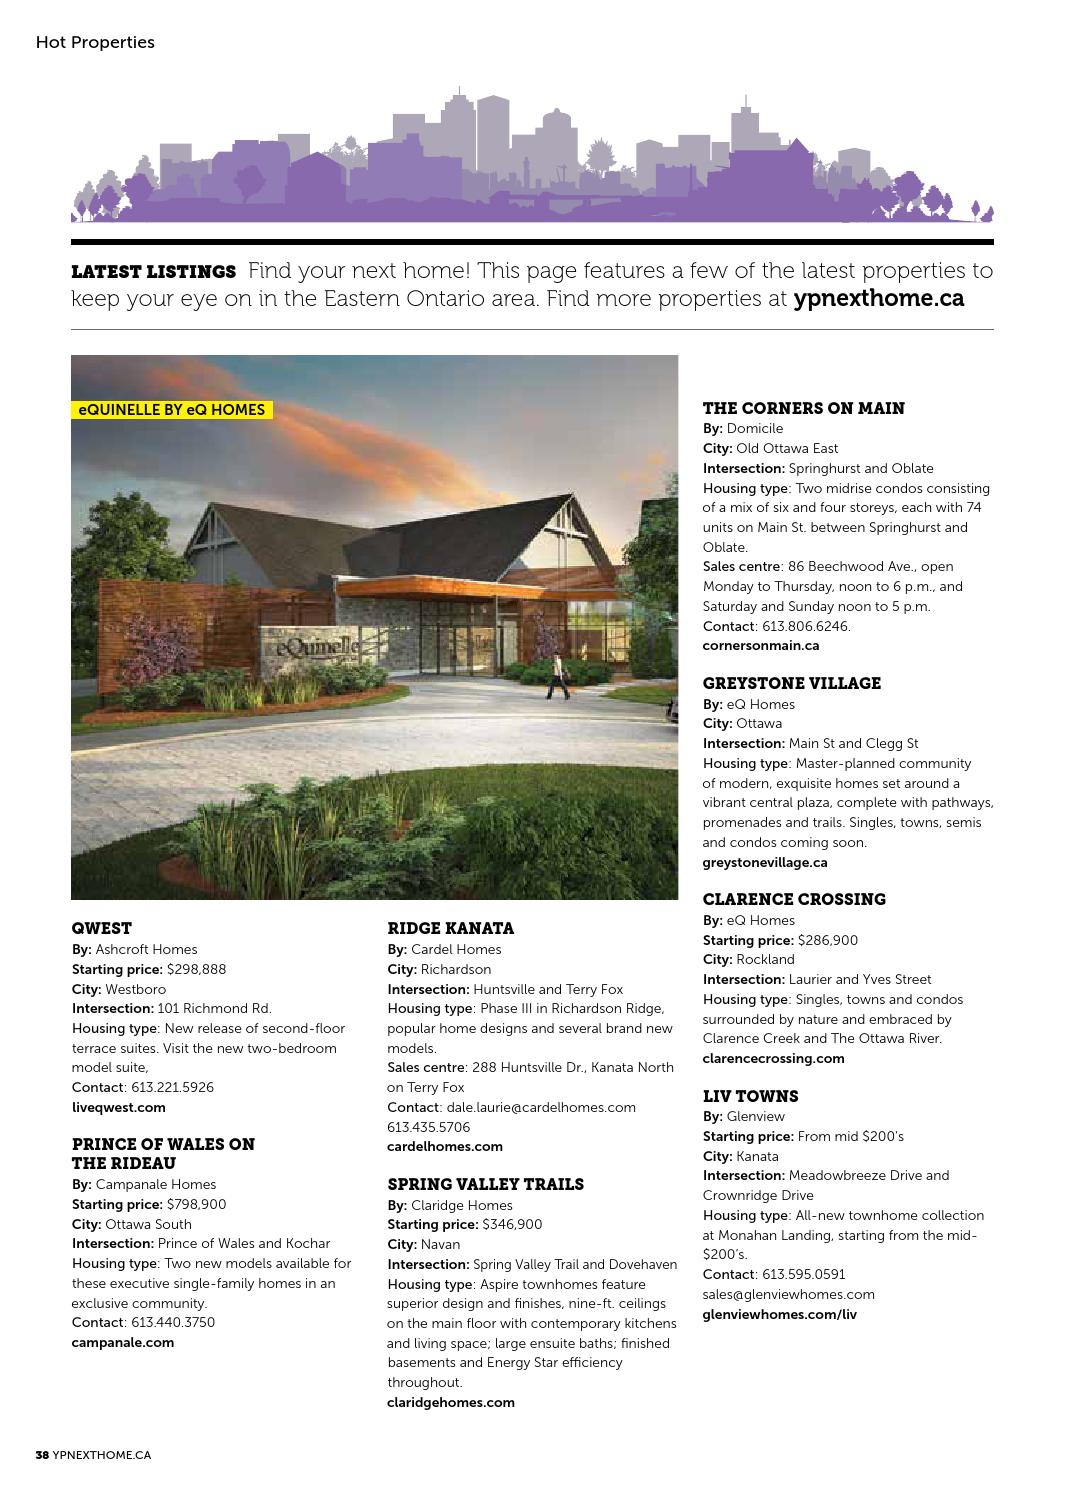 Eastern Ontario New Home & Condo Guide - Sept 19, 2015 by NextHome ...